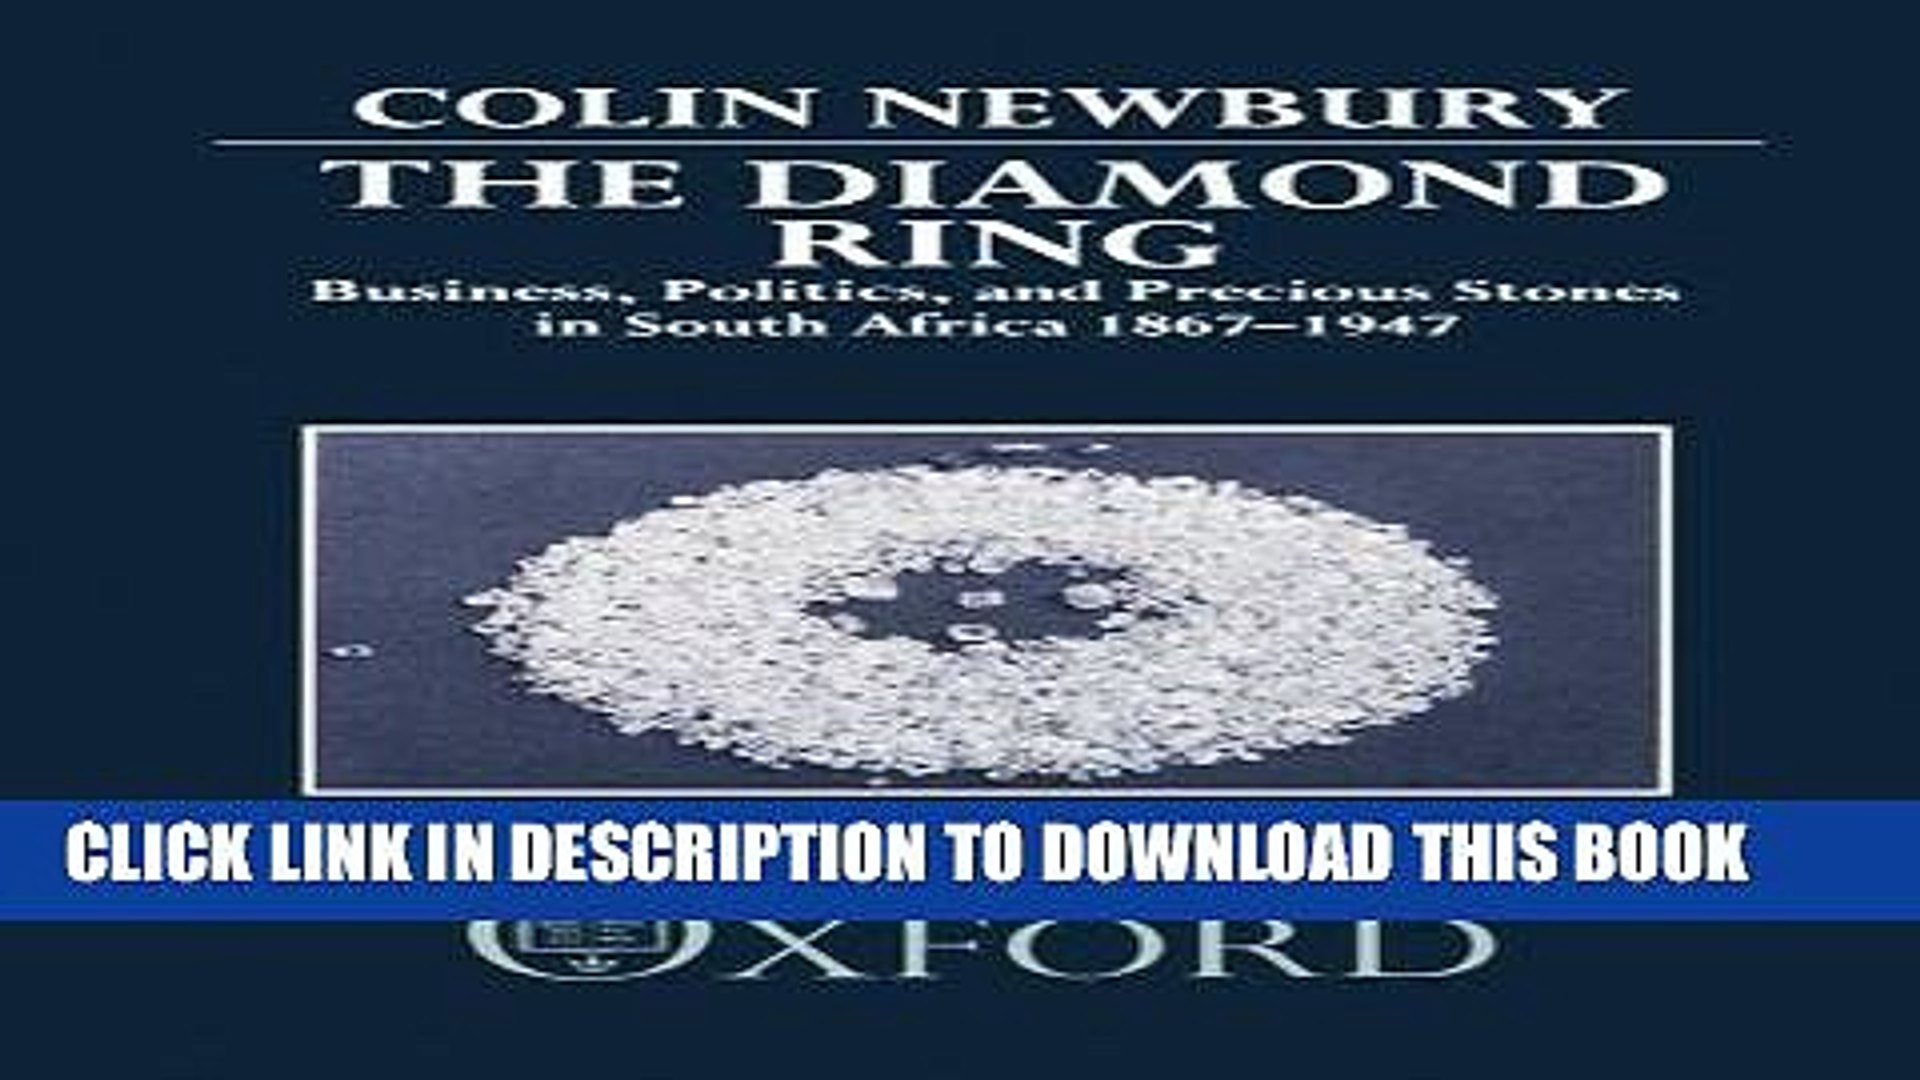 [New] Ebook The Diamond Ring: Business, Politics, and Precious Stones in South Africa, 1867-1947